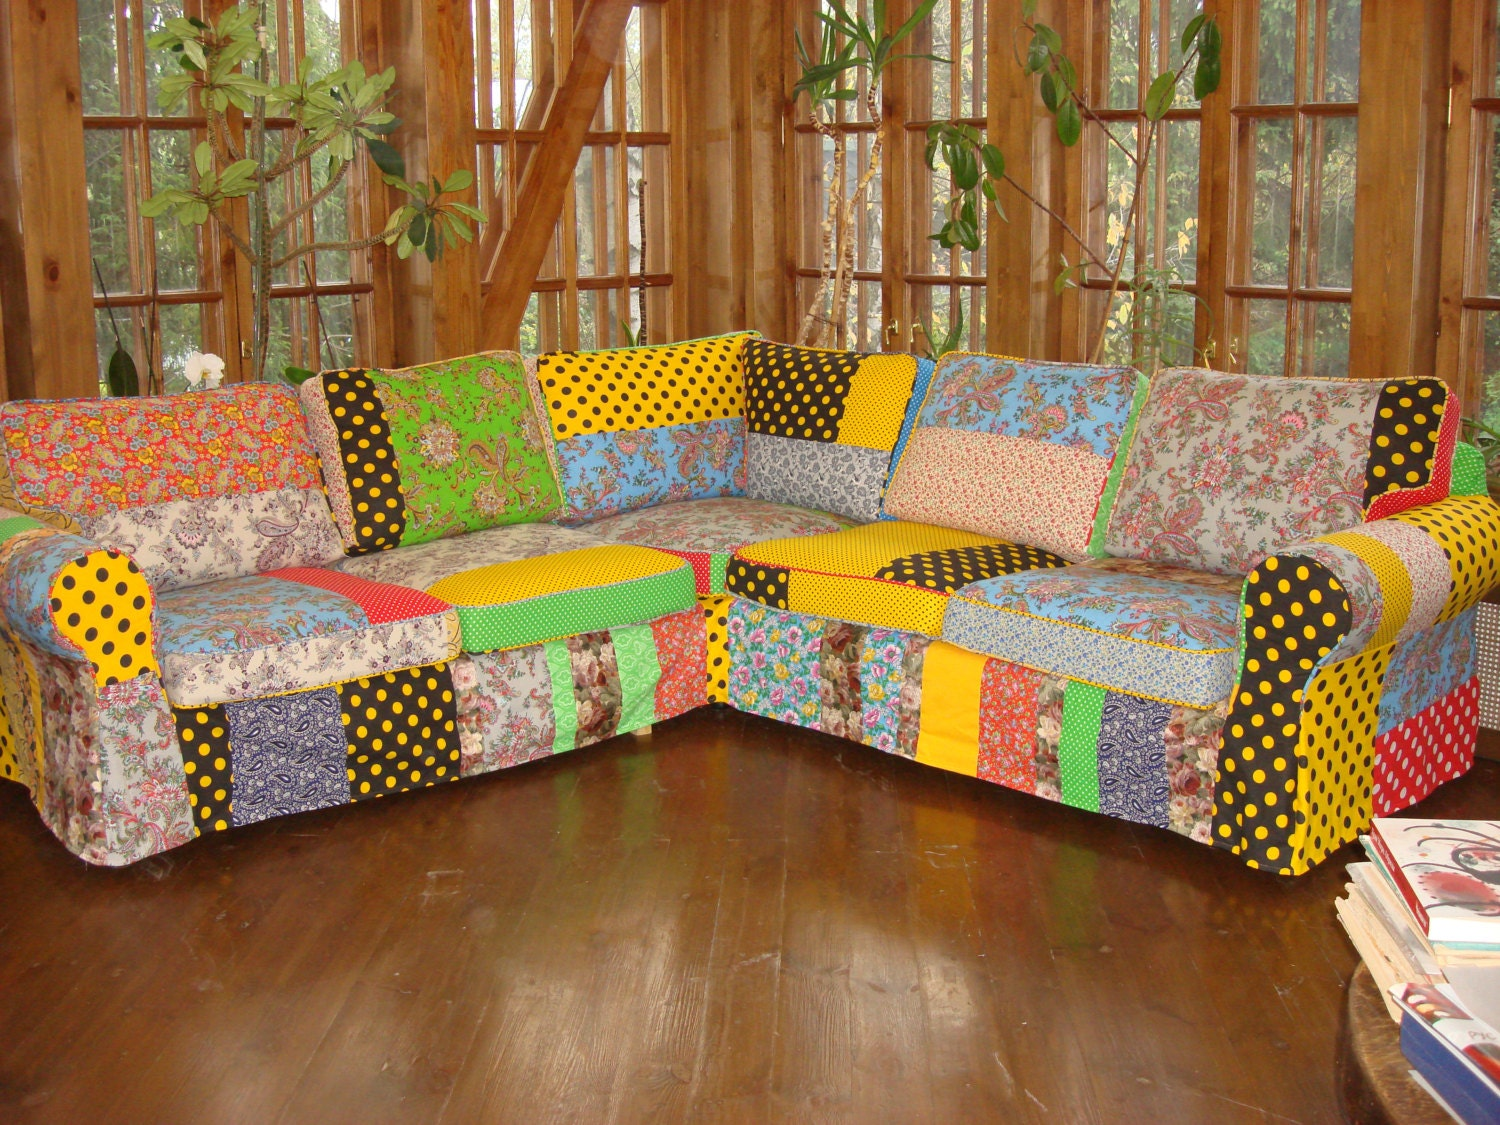 Modern furniture bespoke art accent sofa removable cover